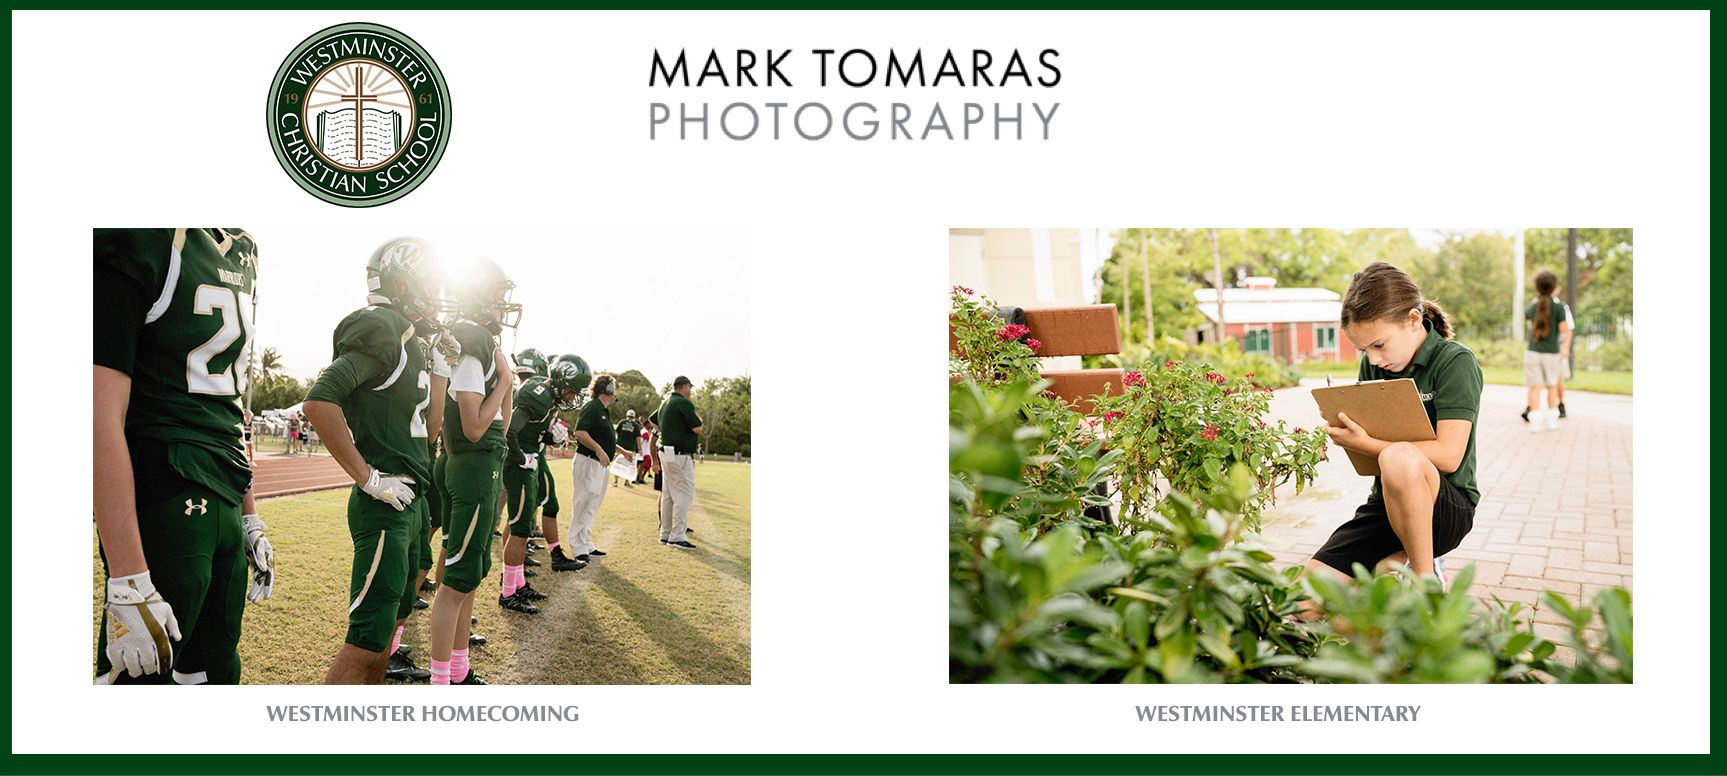 View professional photos taken throughout the year. Check back as more will be added!